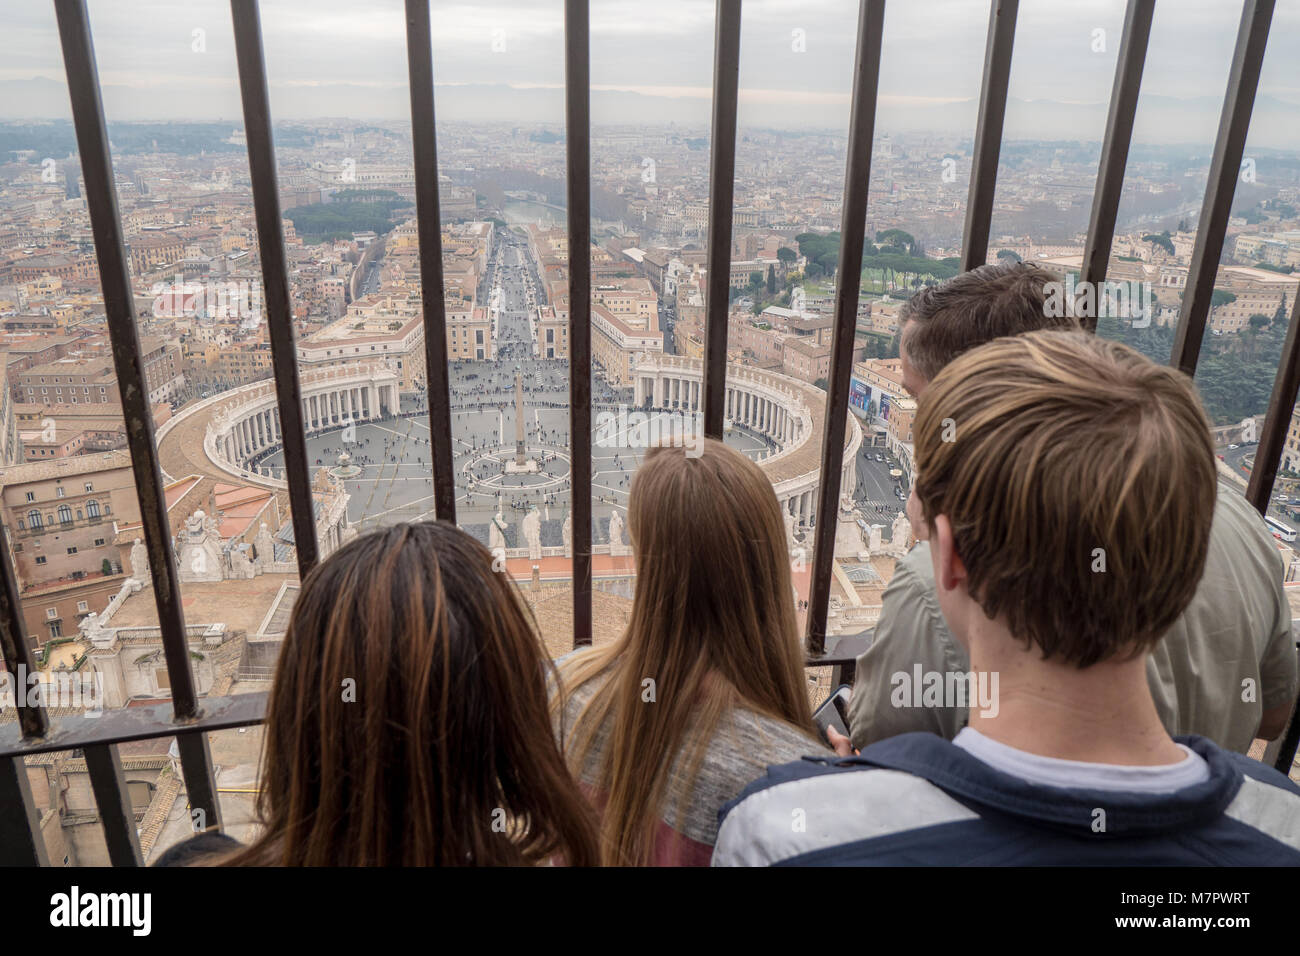 Tourists enjoying the view of Rome skyline from the top of St. Peter's Basilica in Rome, Italy - Stock Image